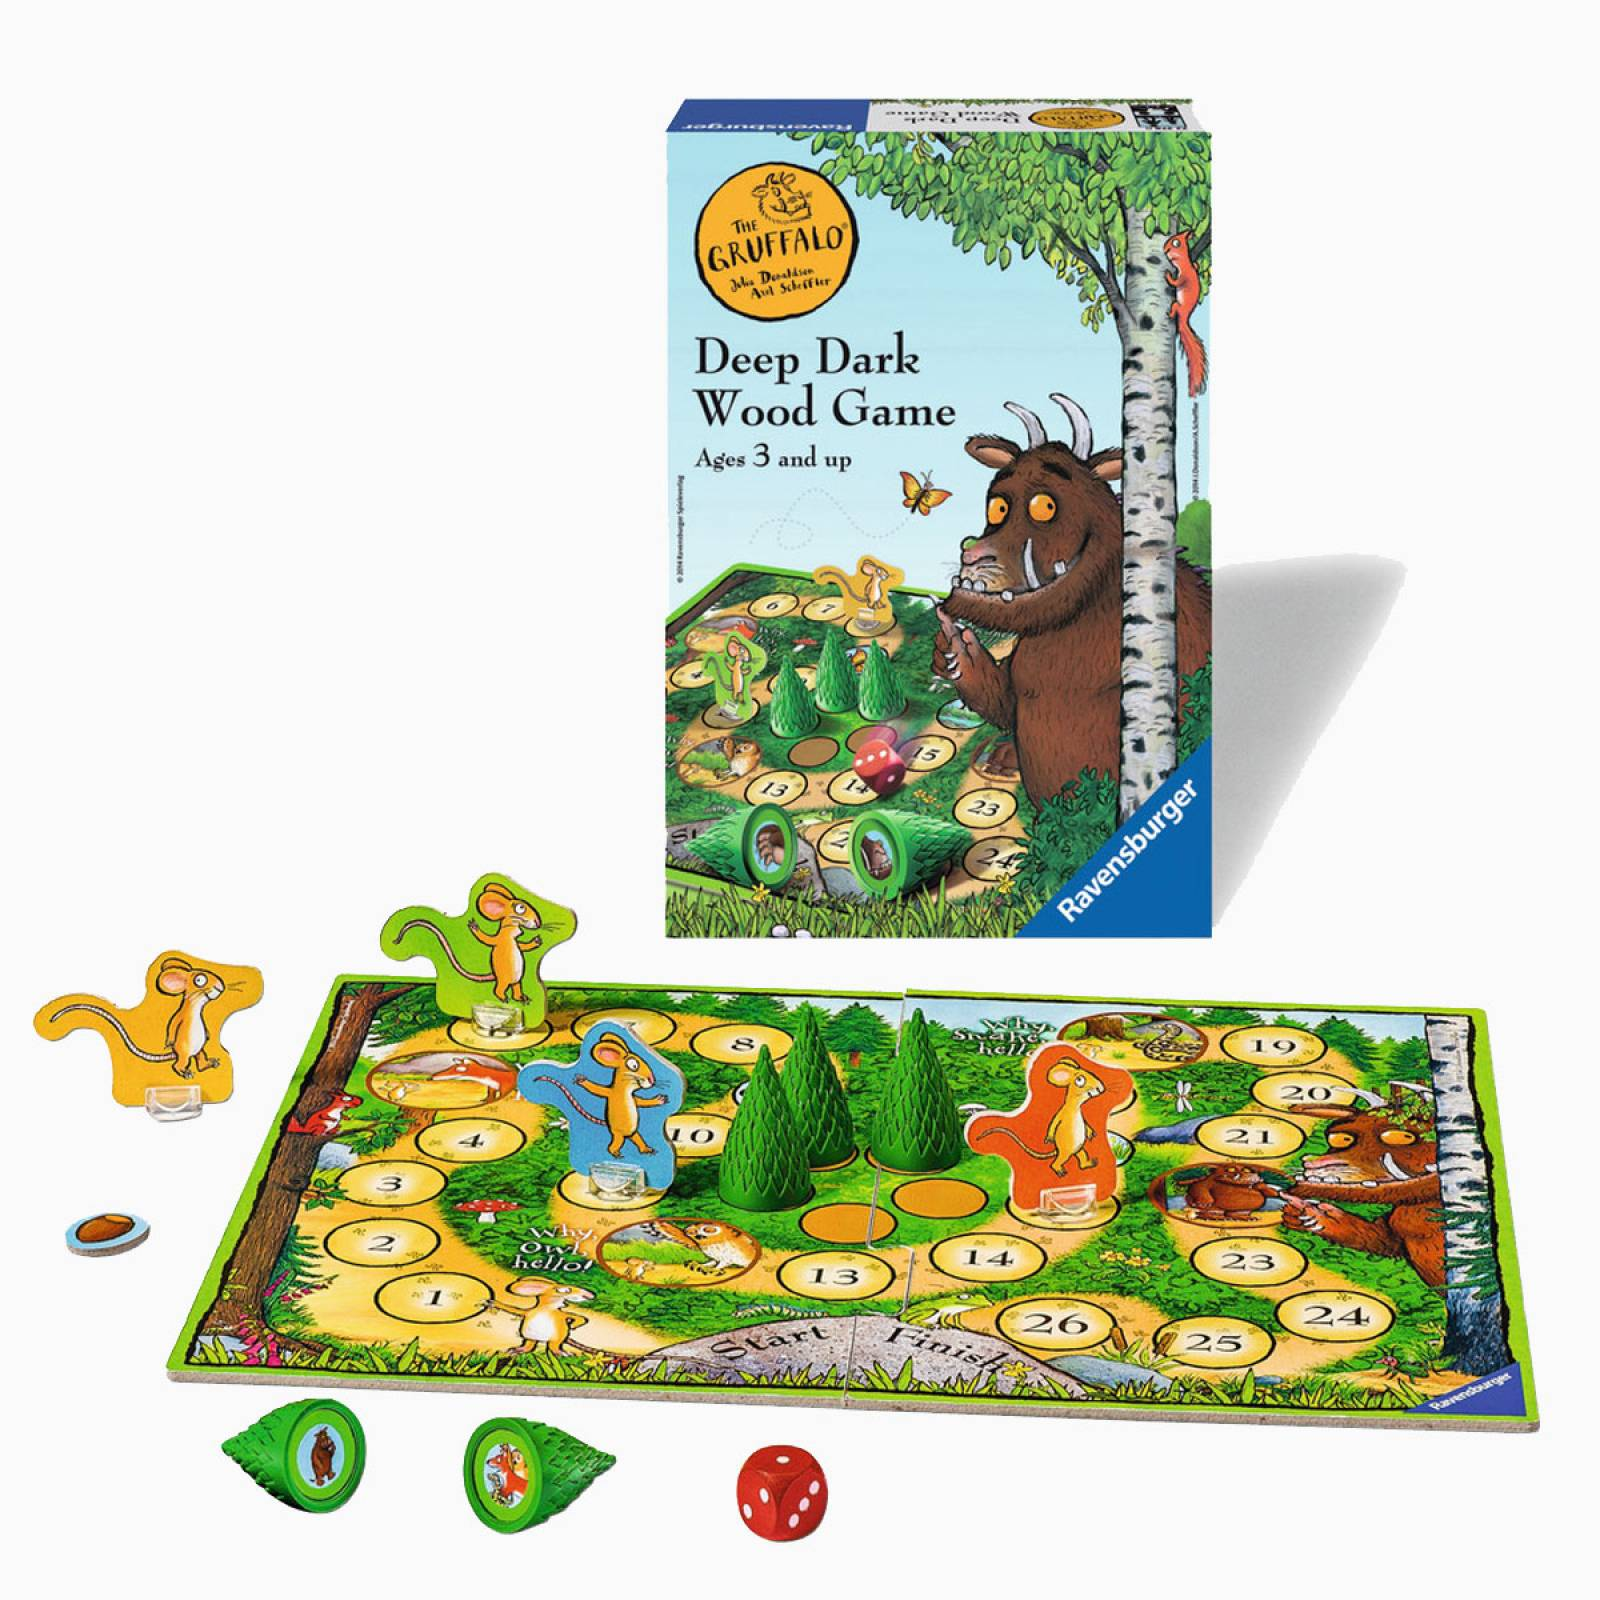 The Gruffalo Deep Dark Wood Game 3+